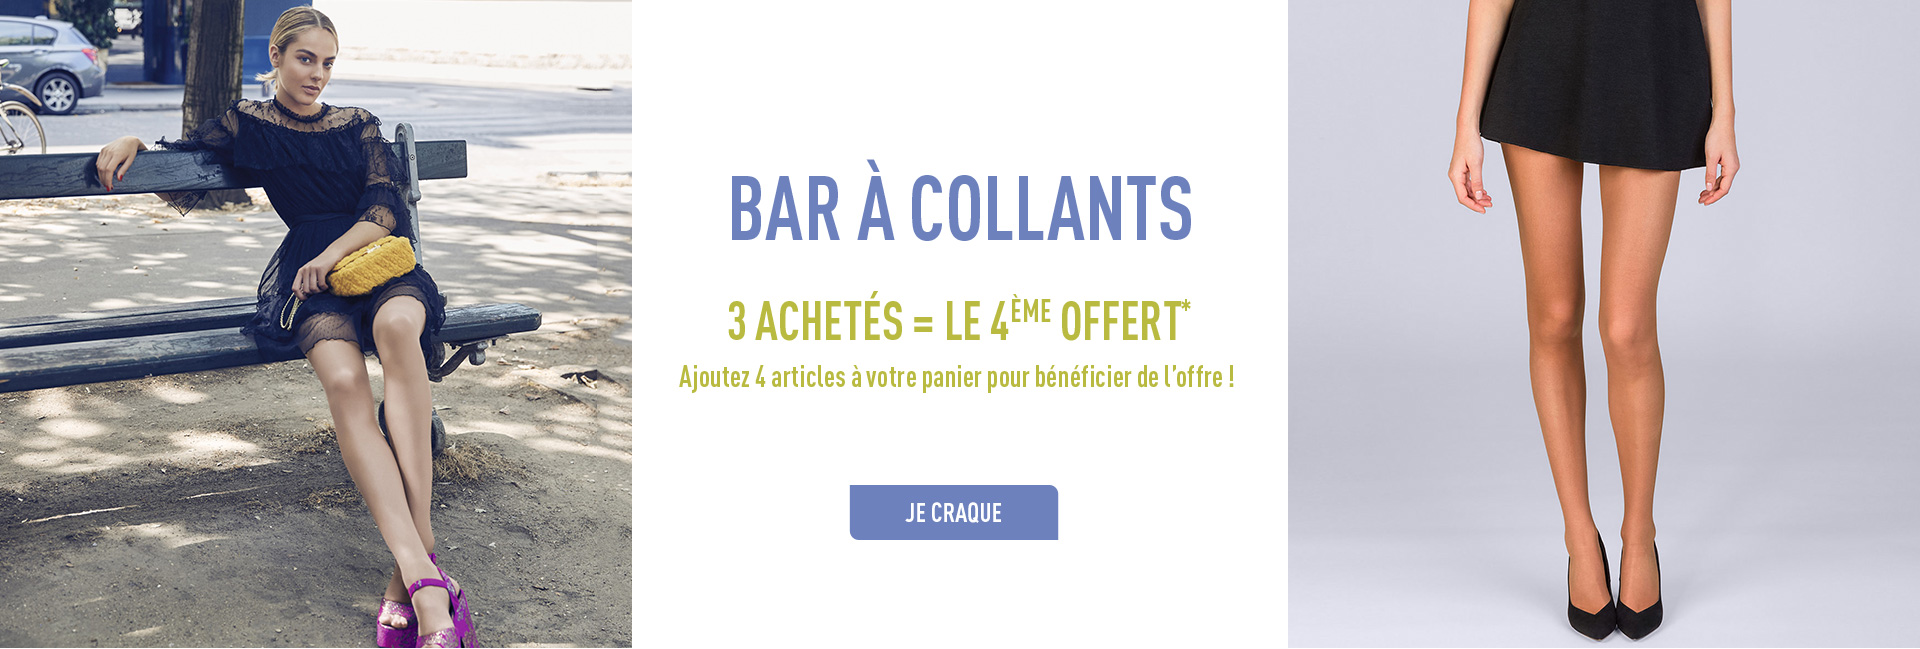 Bar à collants